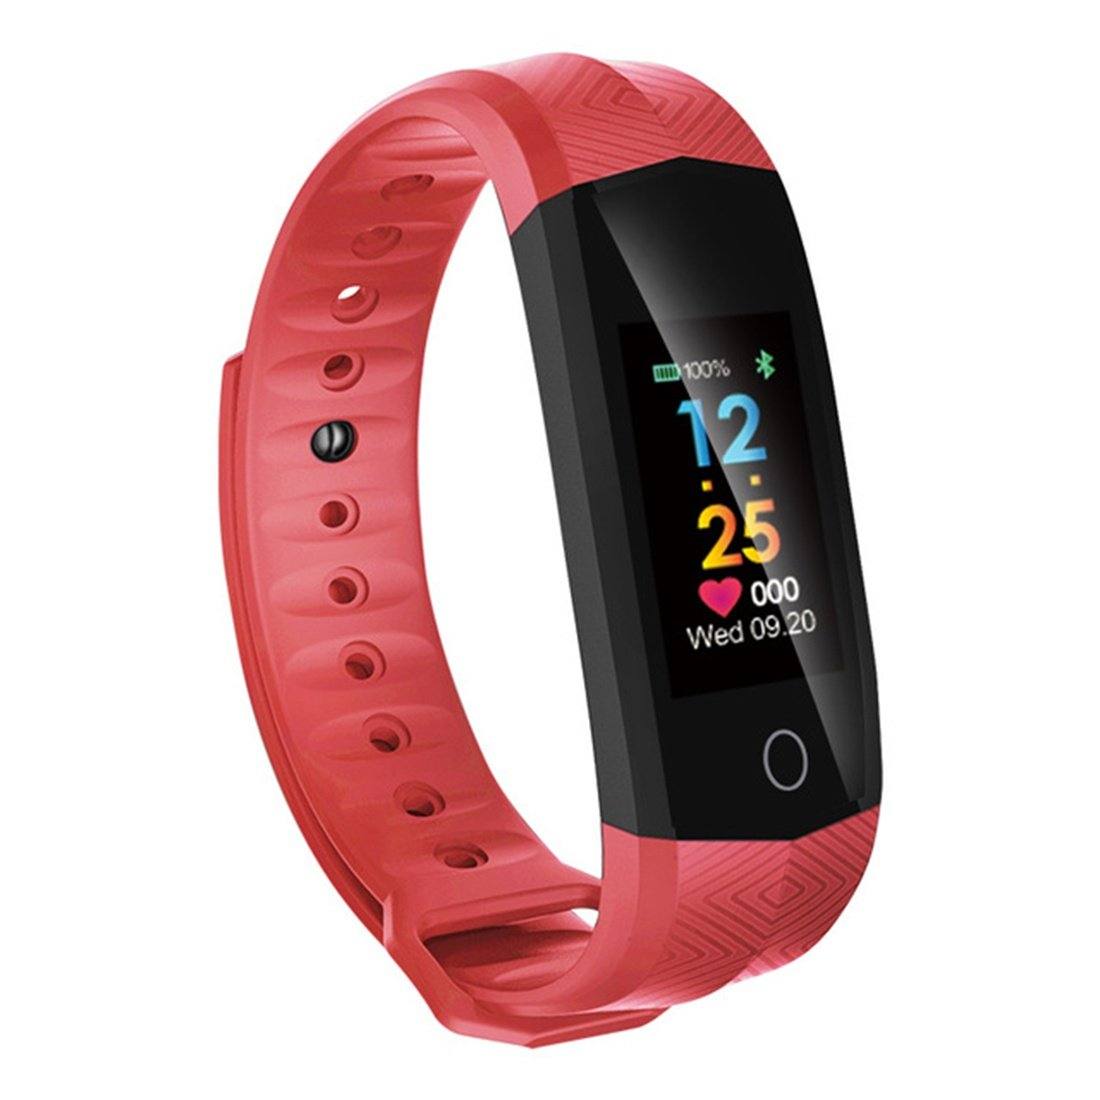 Wristbands Waterproof Smart Bracelet Heart Rate Monitor Fitness Tracker Smart Bracelet Color Screen for IOS Android Phone, A